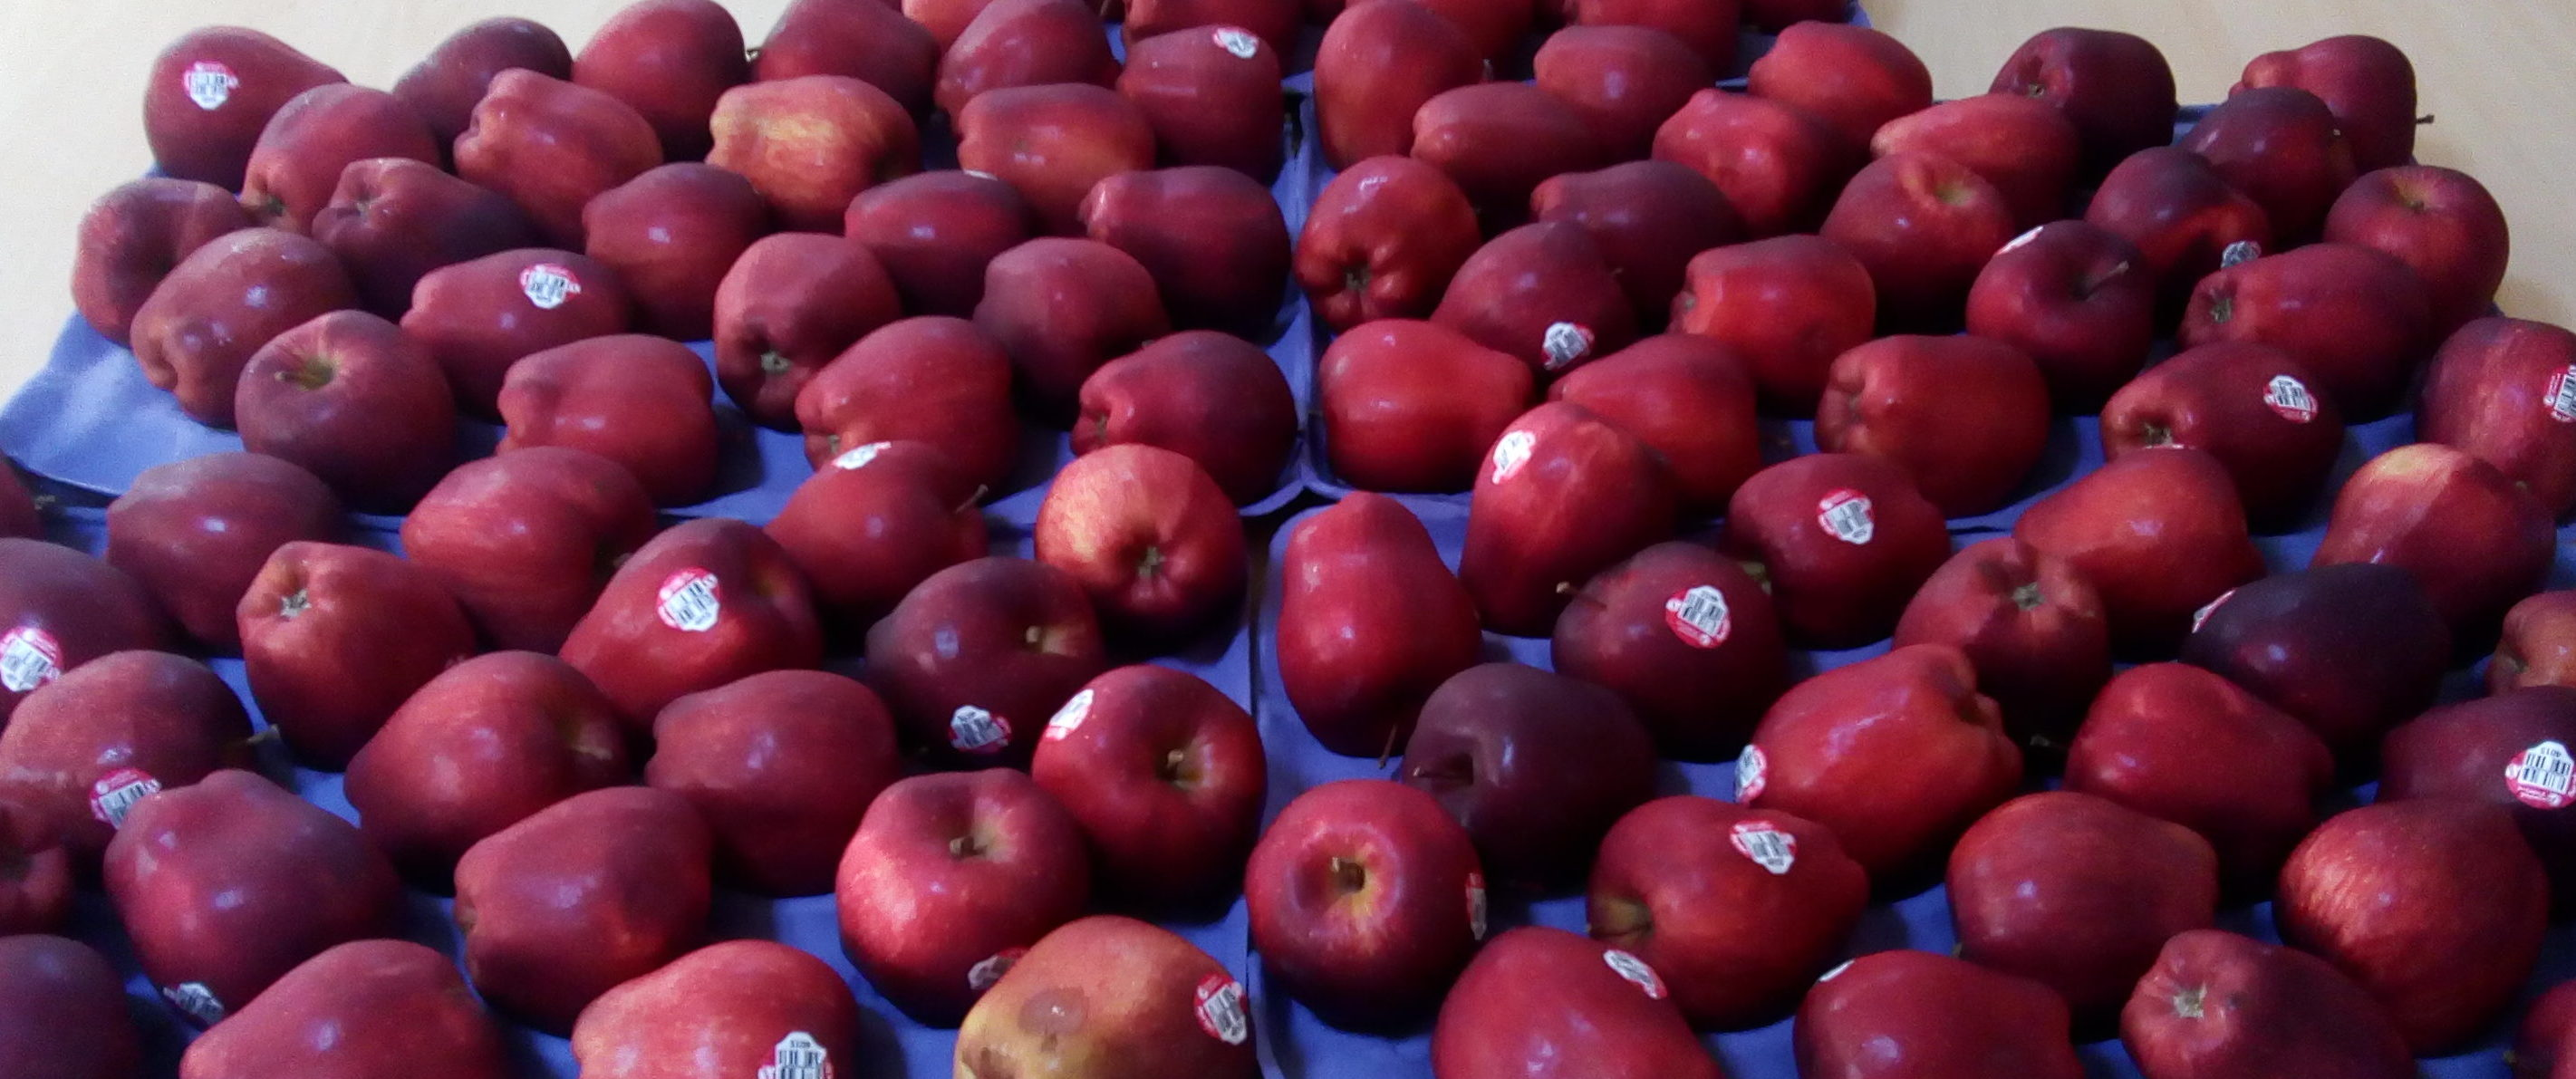 Red Delicious Apples exotic fruits